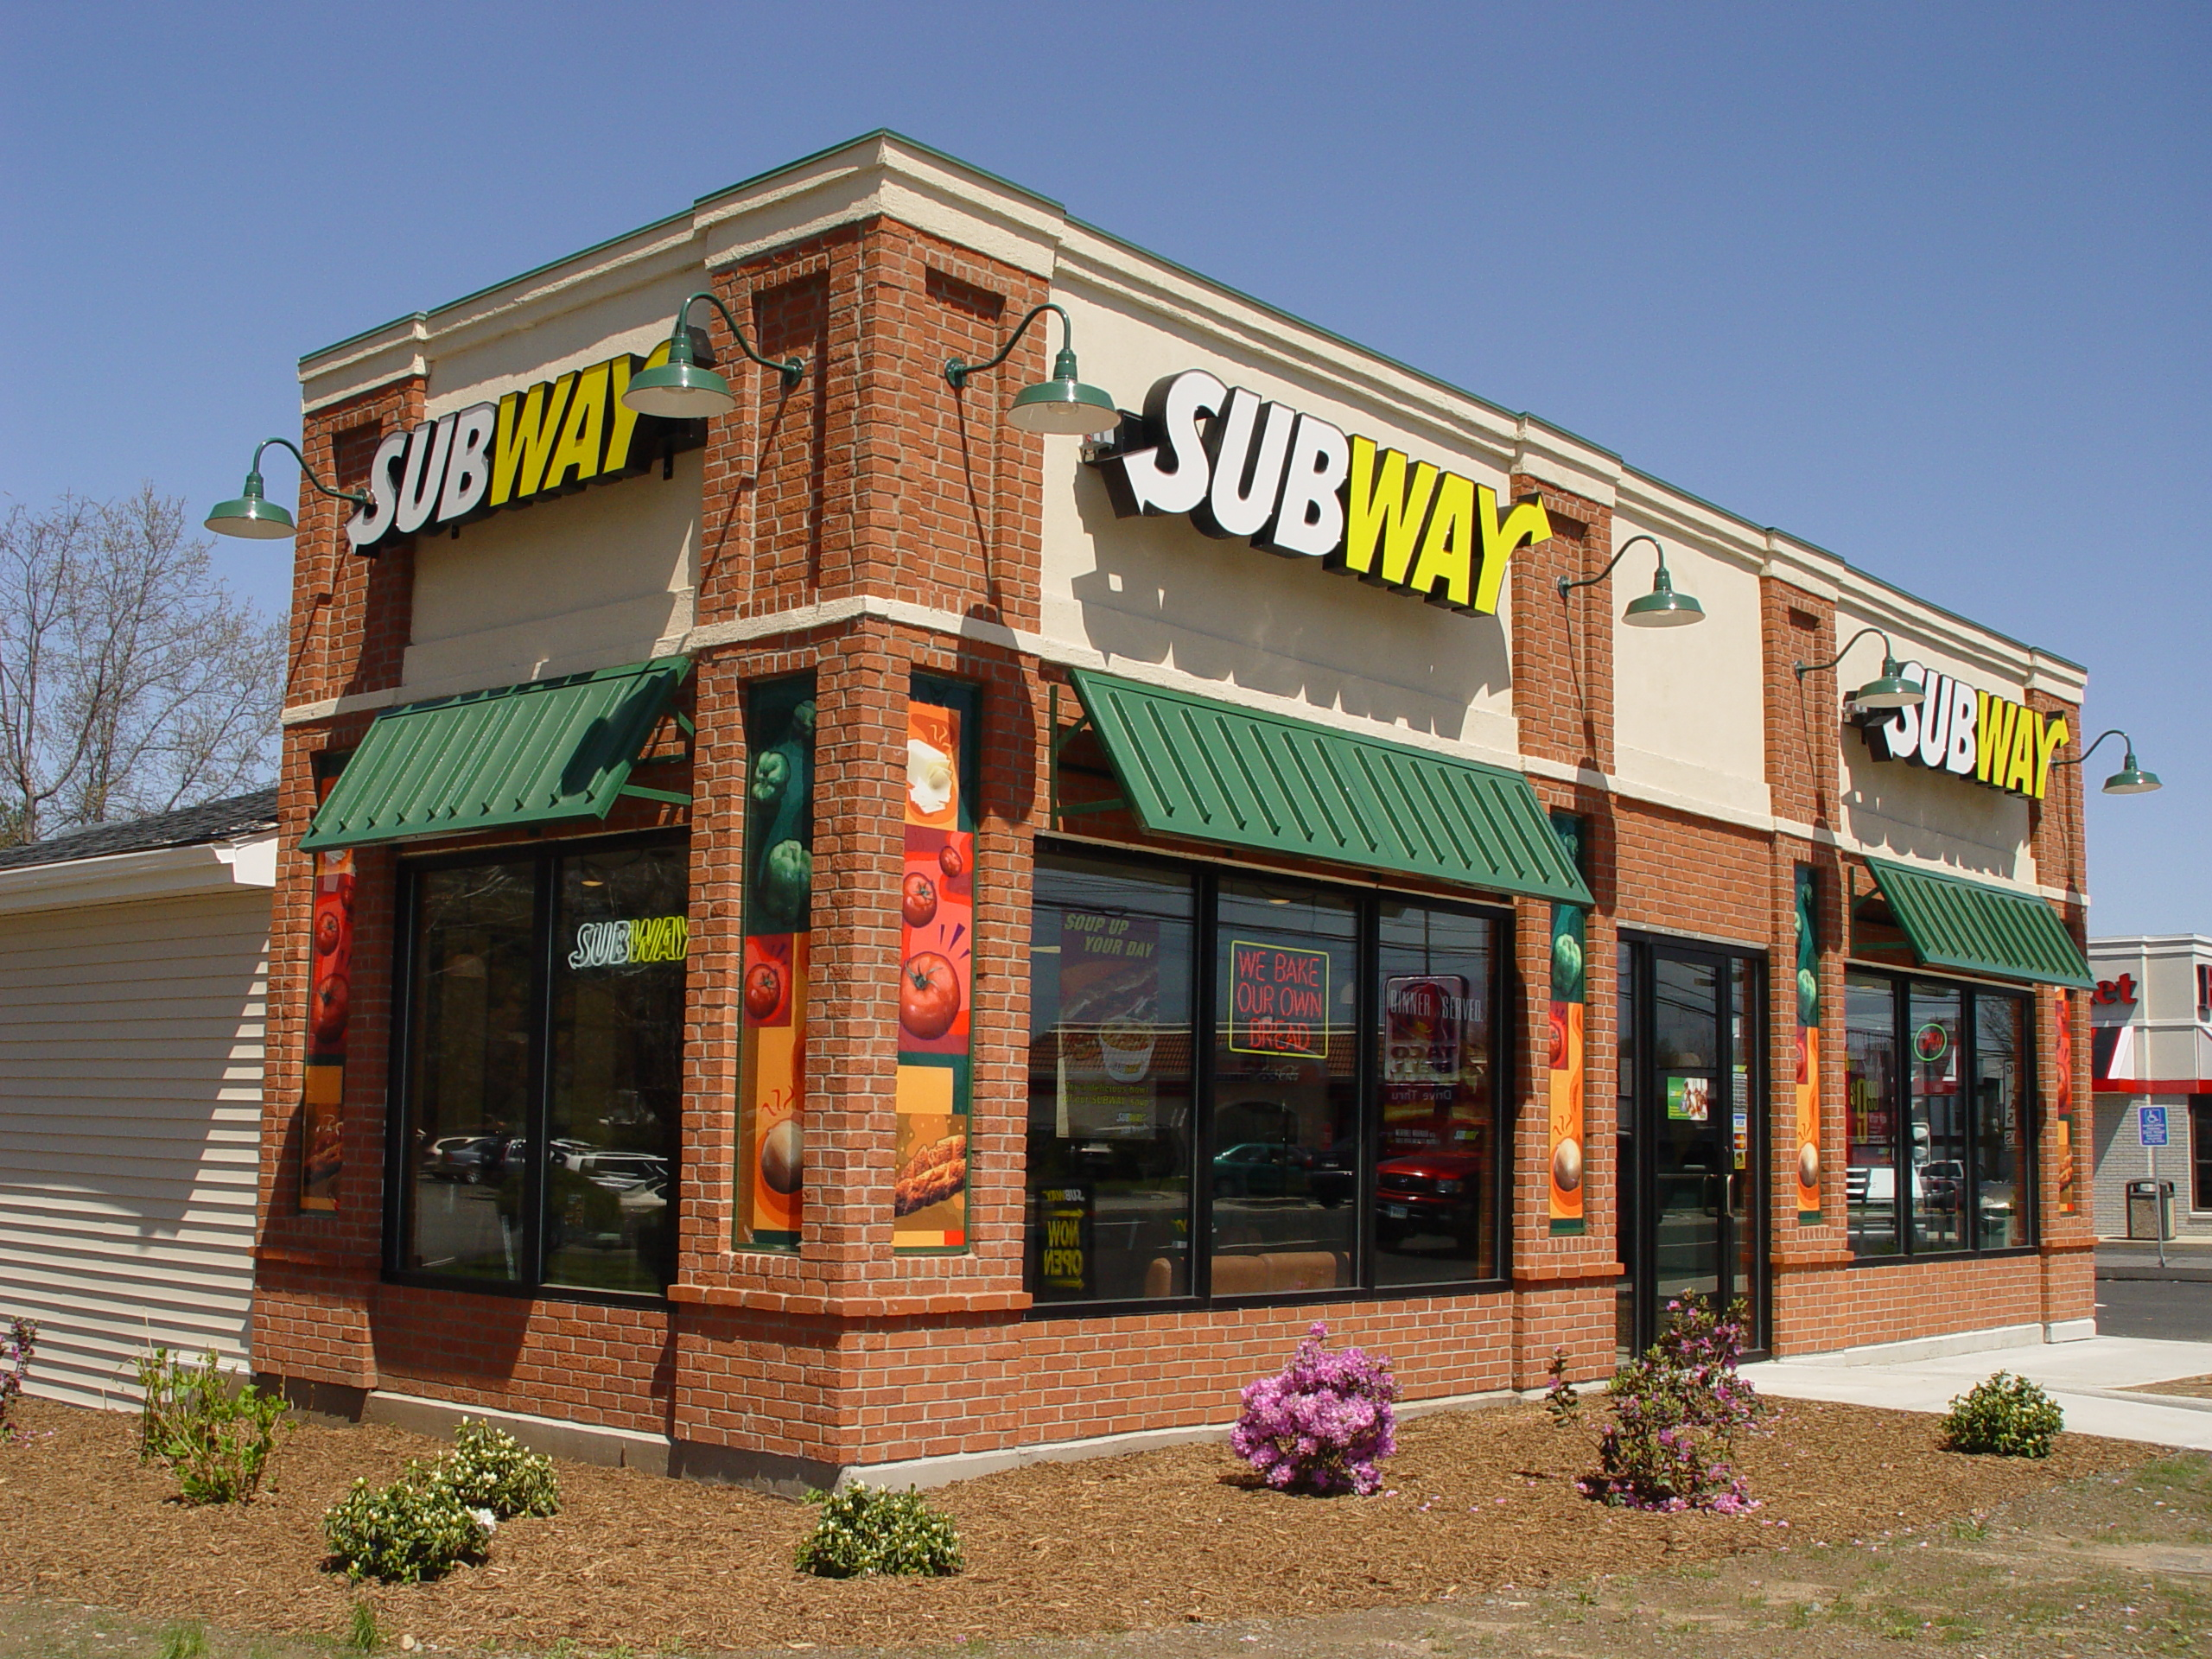 Subway, Killingworth CT